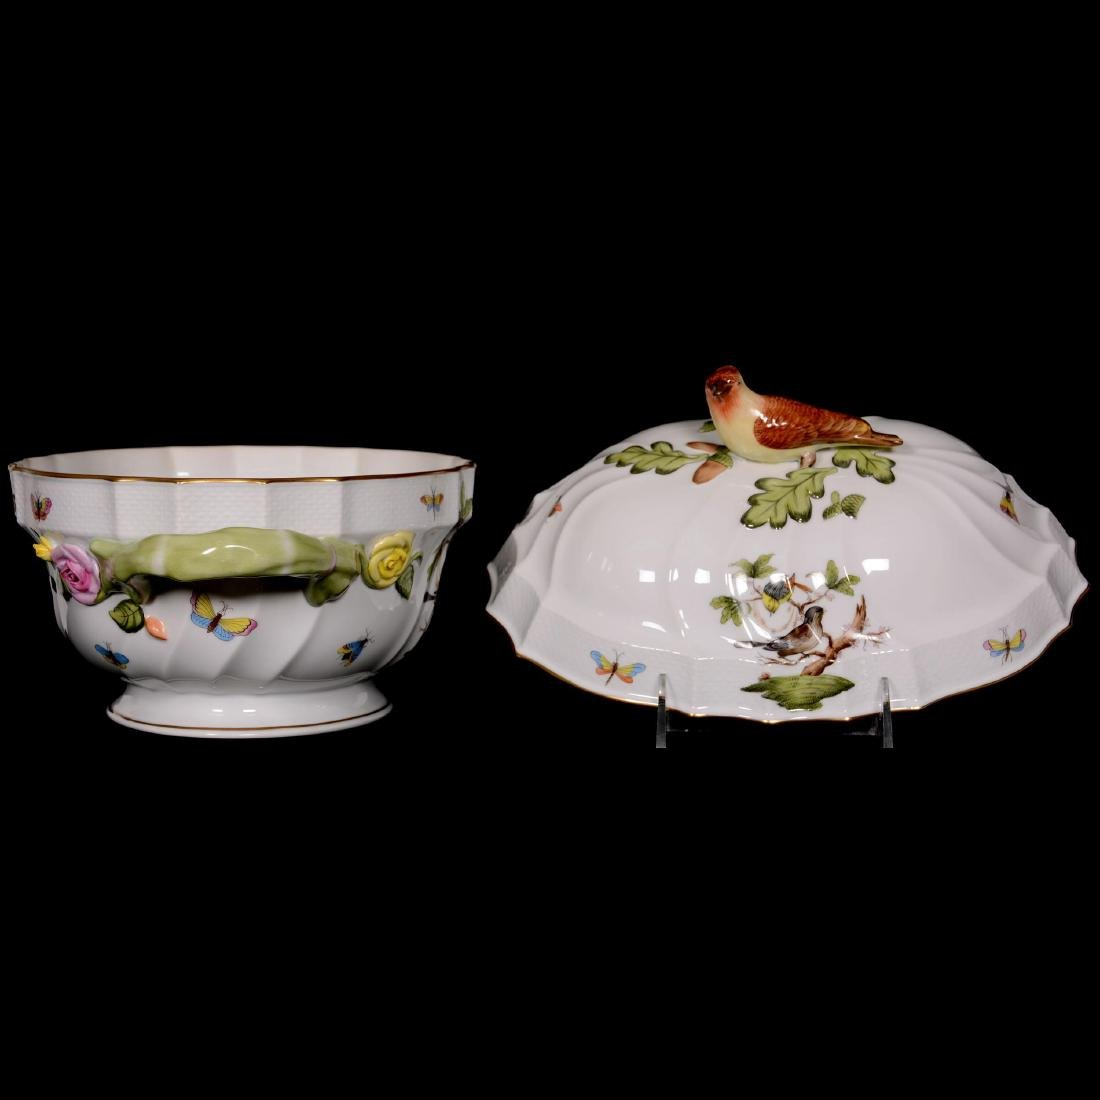 Herend Hungary Porcelain Hand Painted Covered Tureen - 2